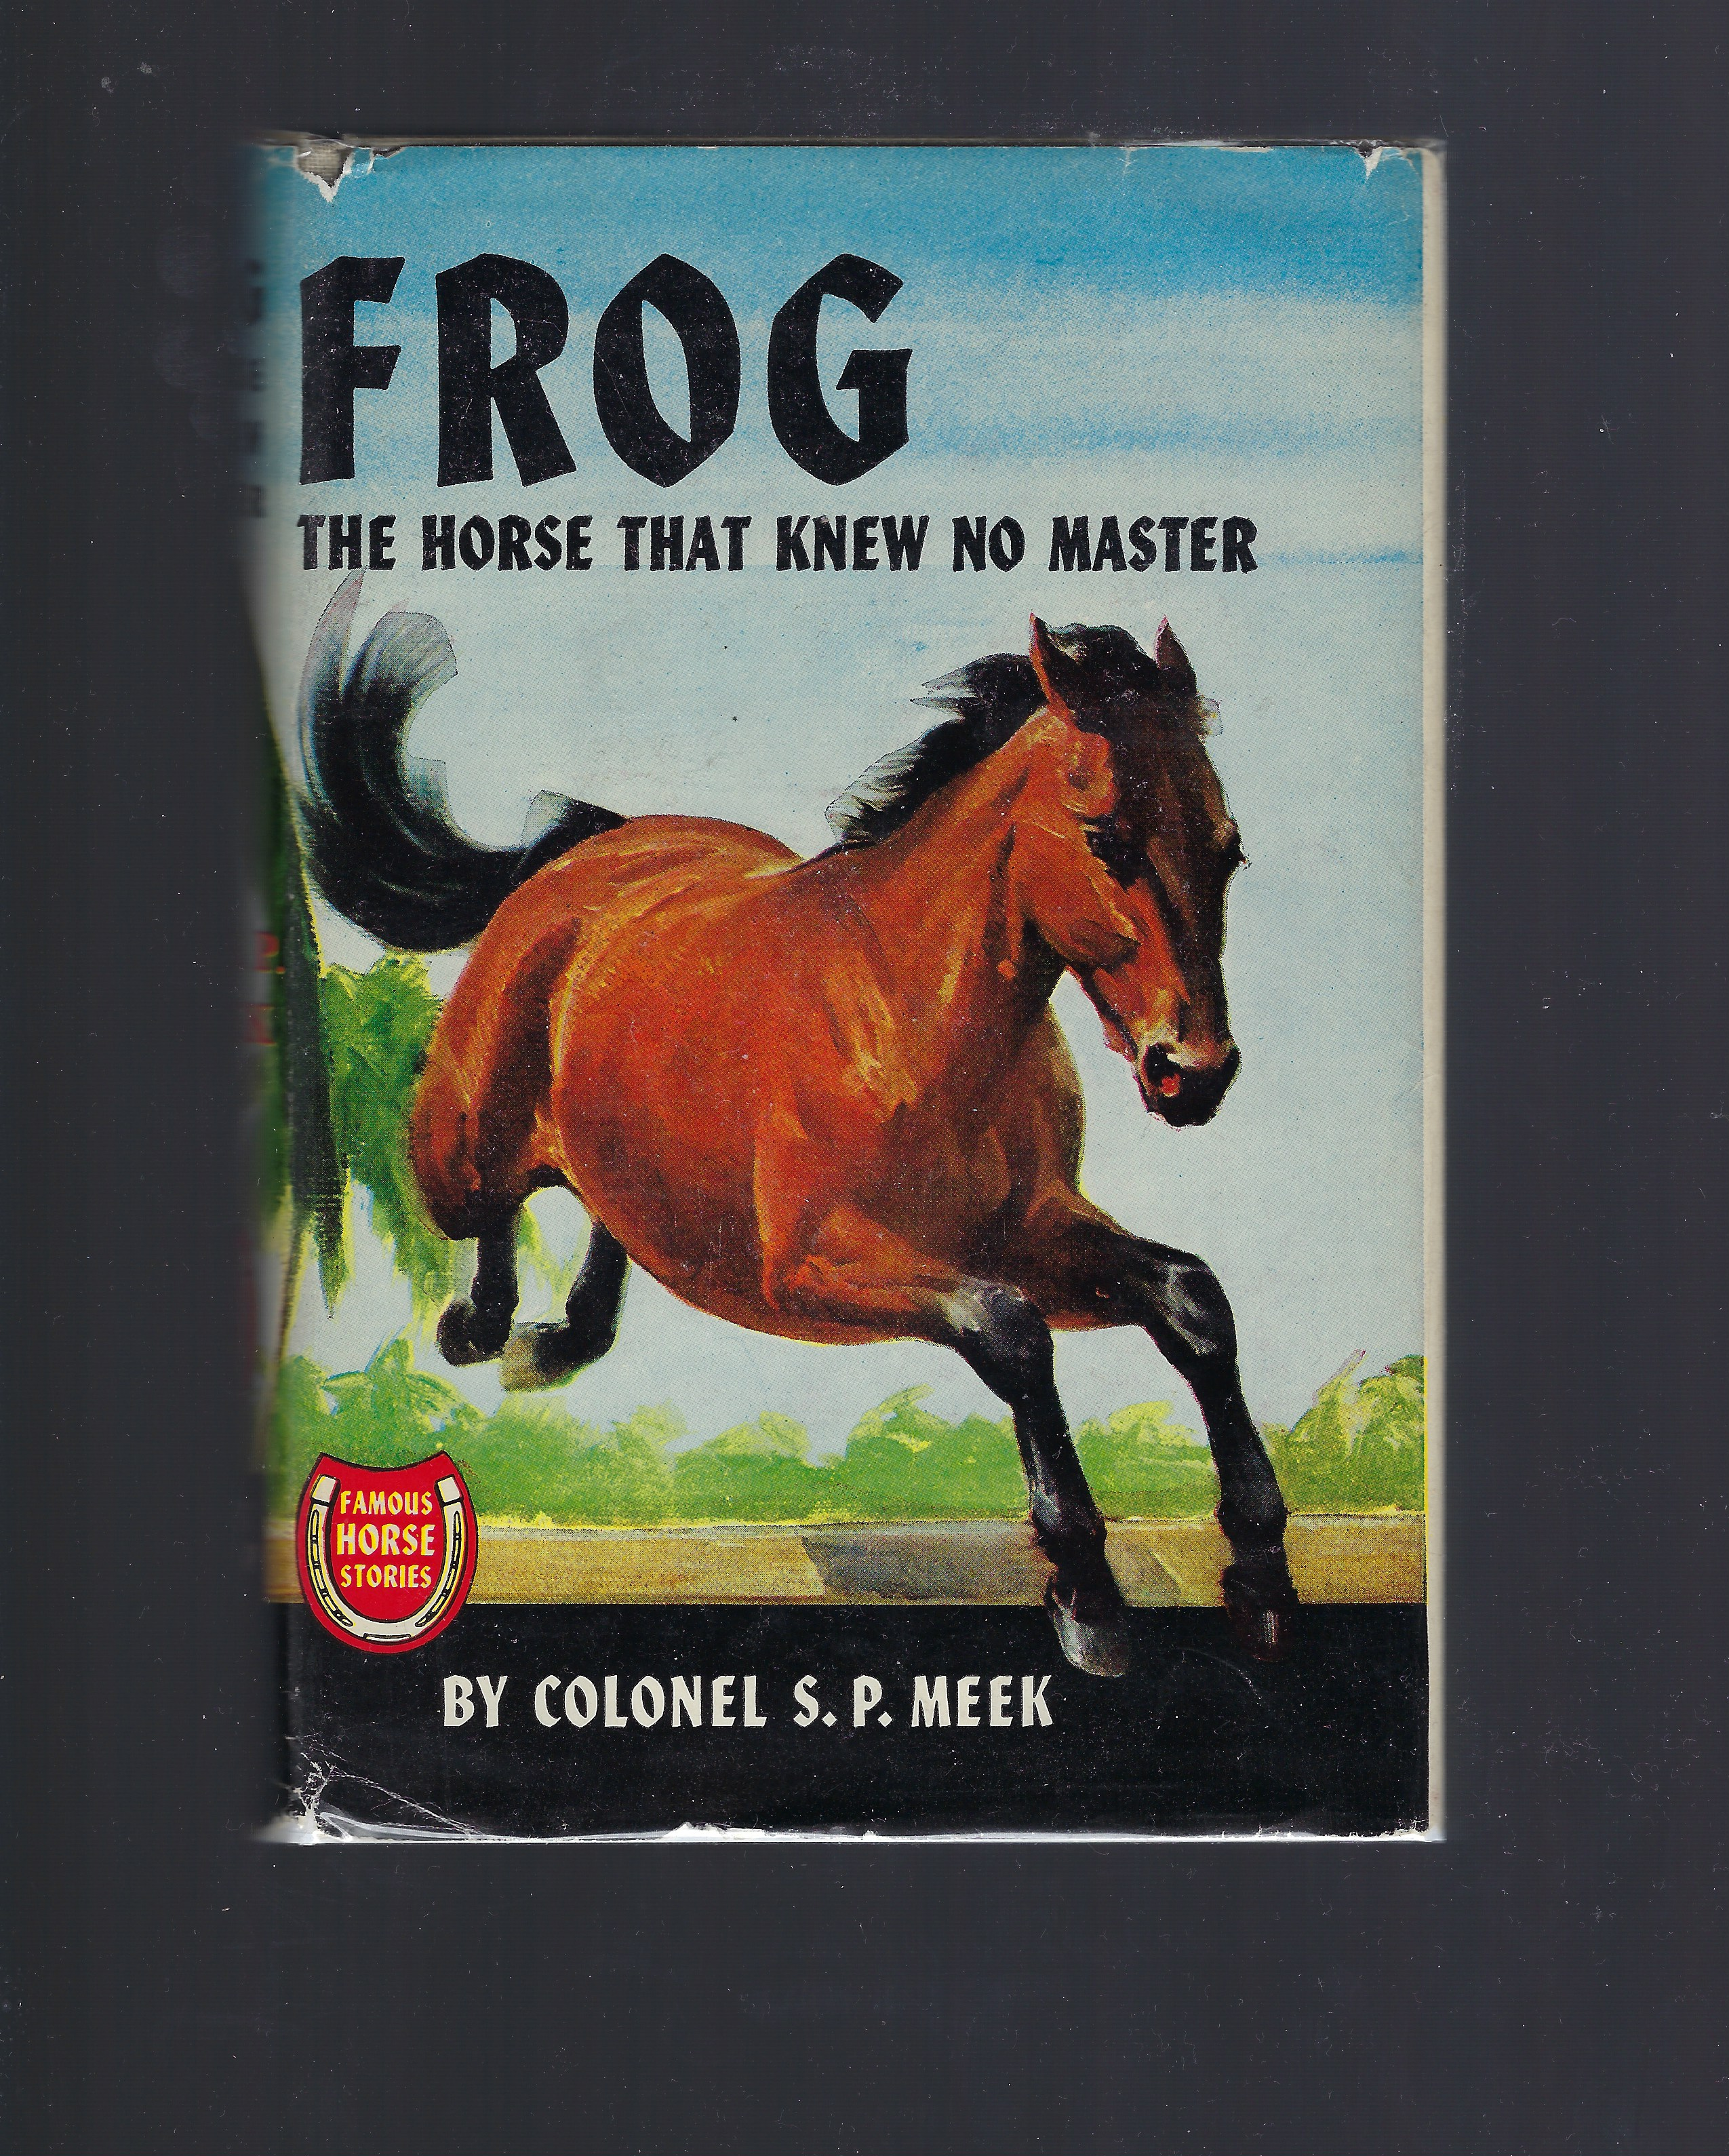 Frog The Horse That Knew No Master (Famous Horse Stories) HB/DJ, Meek, Colonel S. P.; Pers Crowell [Illustrator]